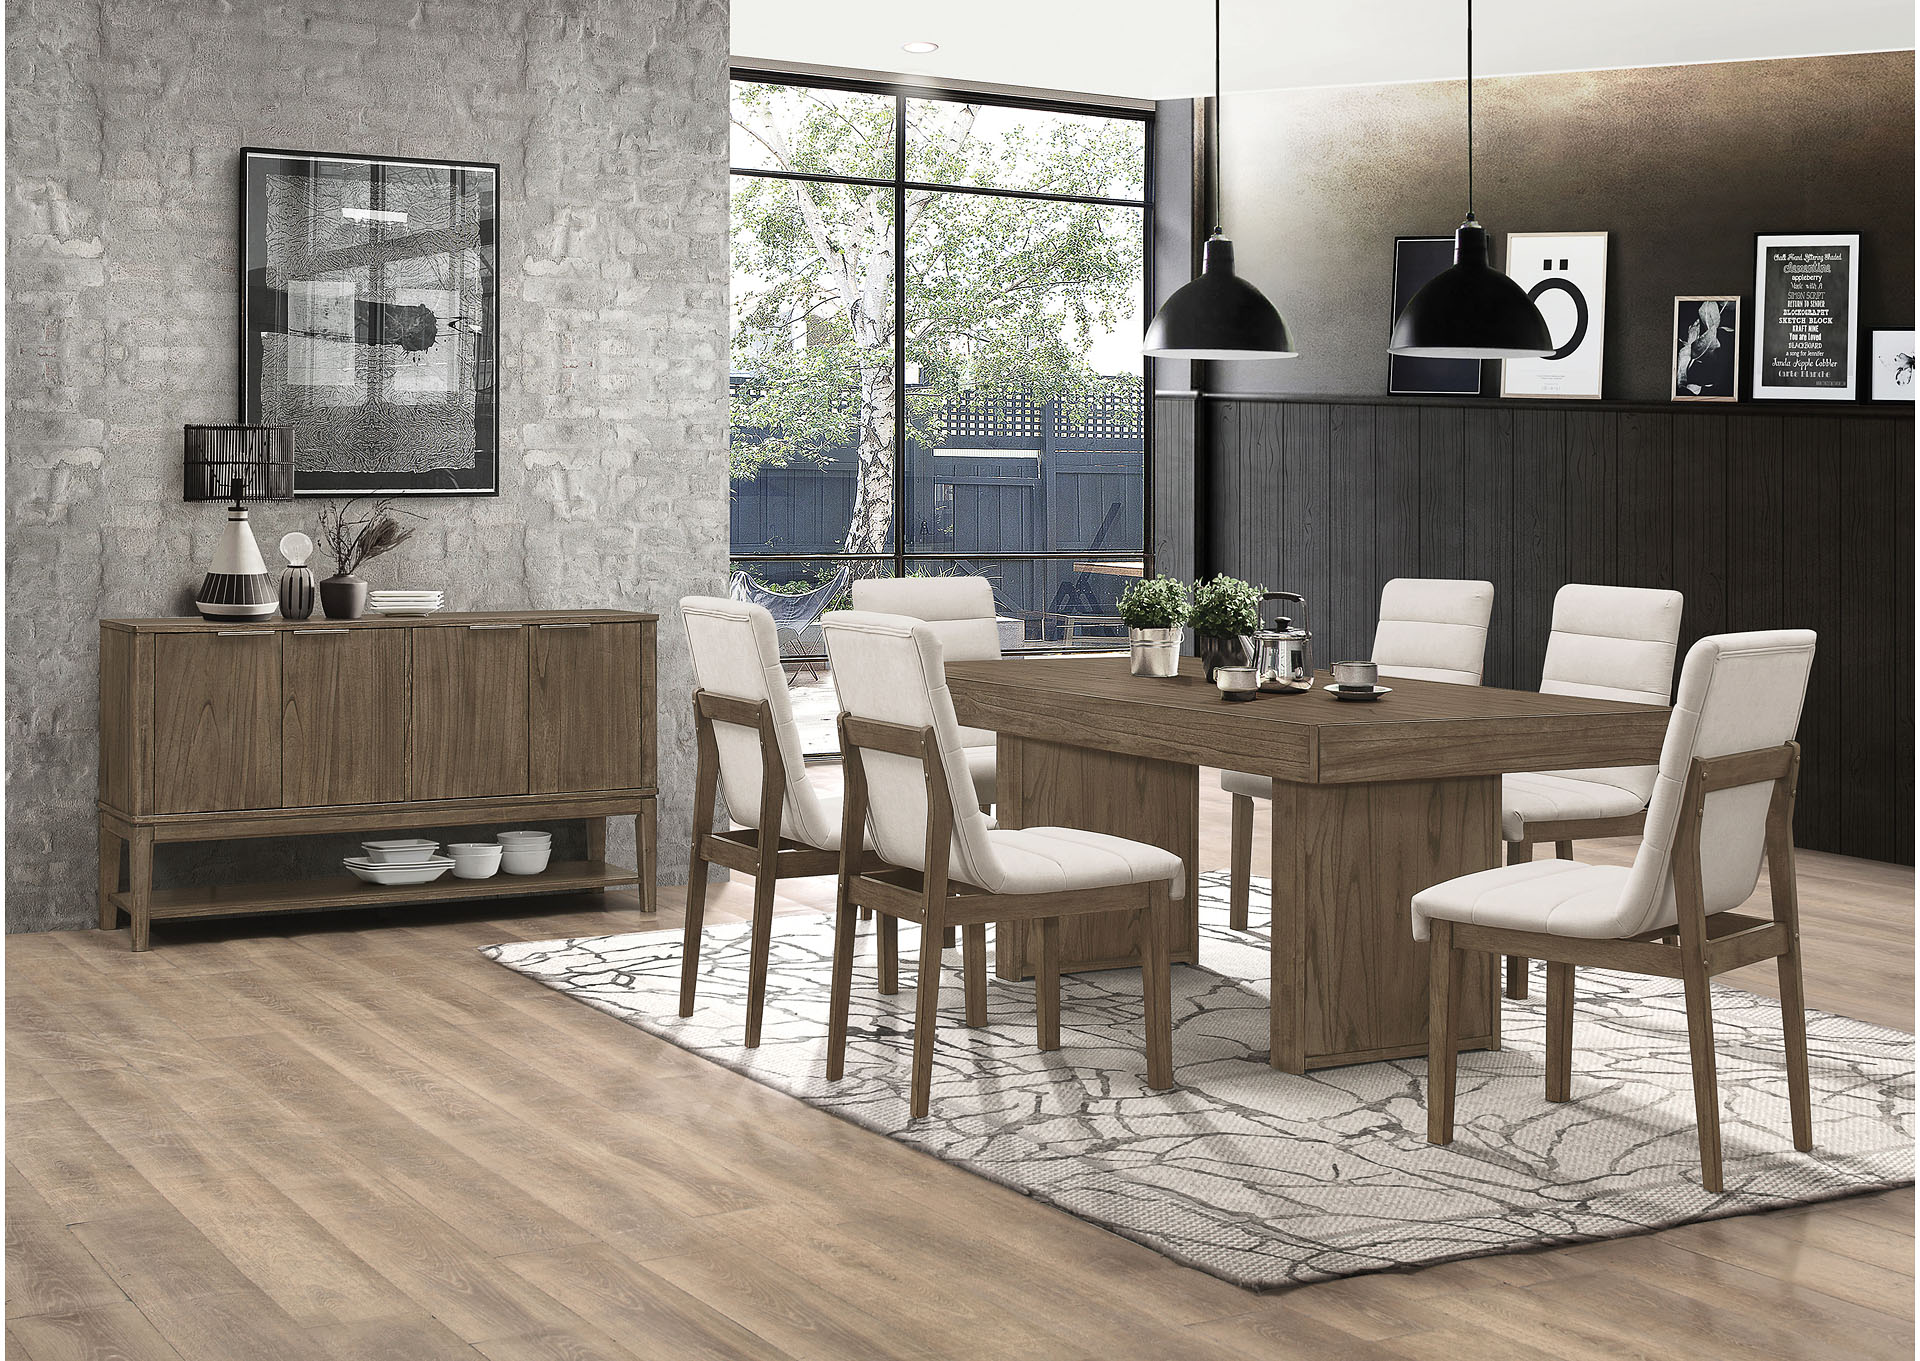 Torrington 7 Piece Dining Set,Coaster Furniture